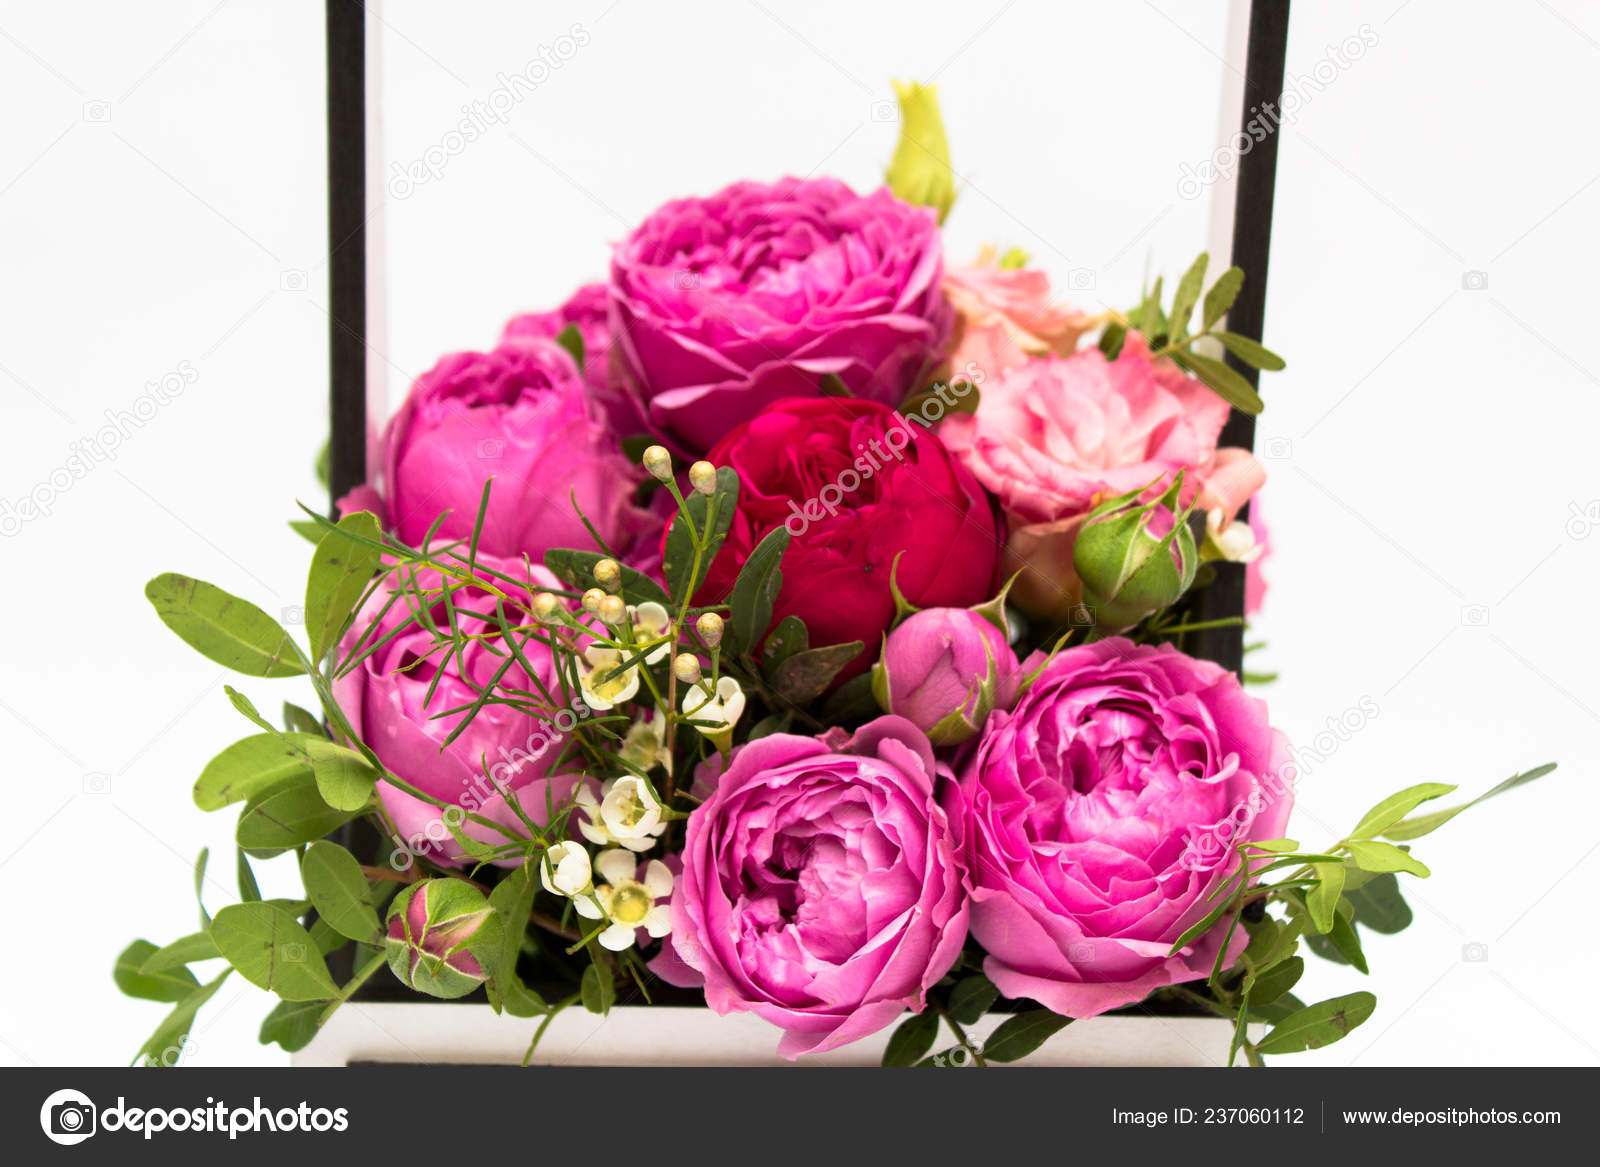 Bouquet Flowers Gift Box Box Booker Roses Mother Day Roses Stock Photo C Mtaratun Gmail Com 237060112